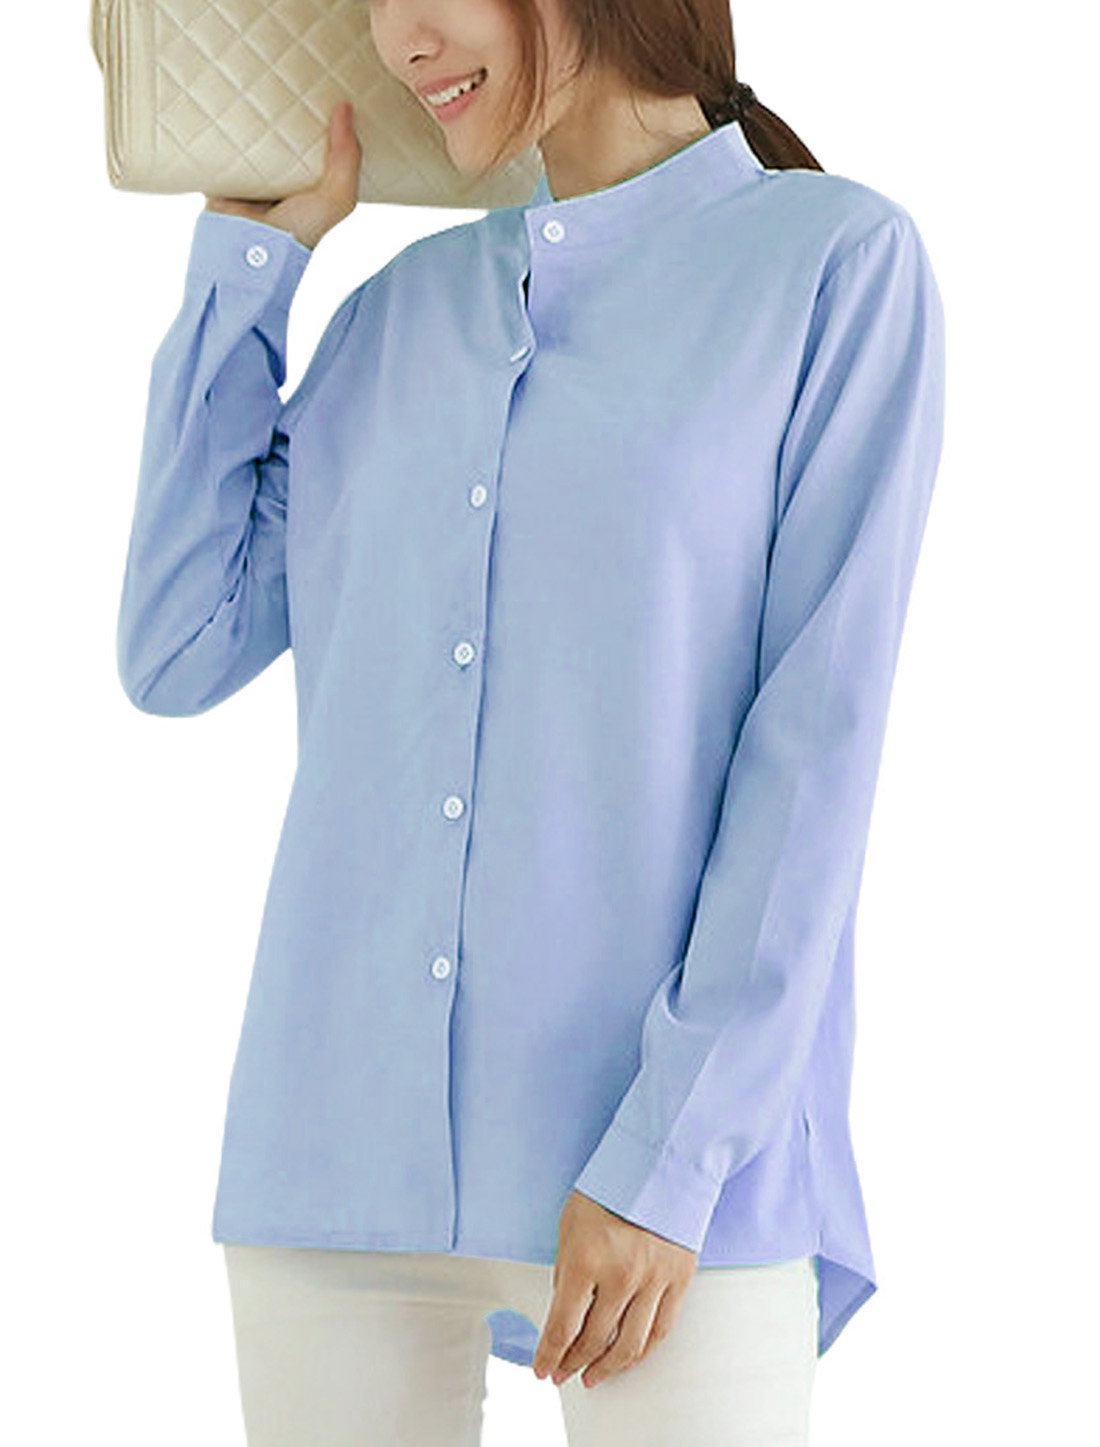 Women Stand Collar Long Sleeve Casual Shirts Light Blue S